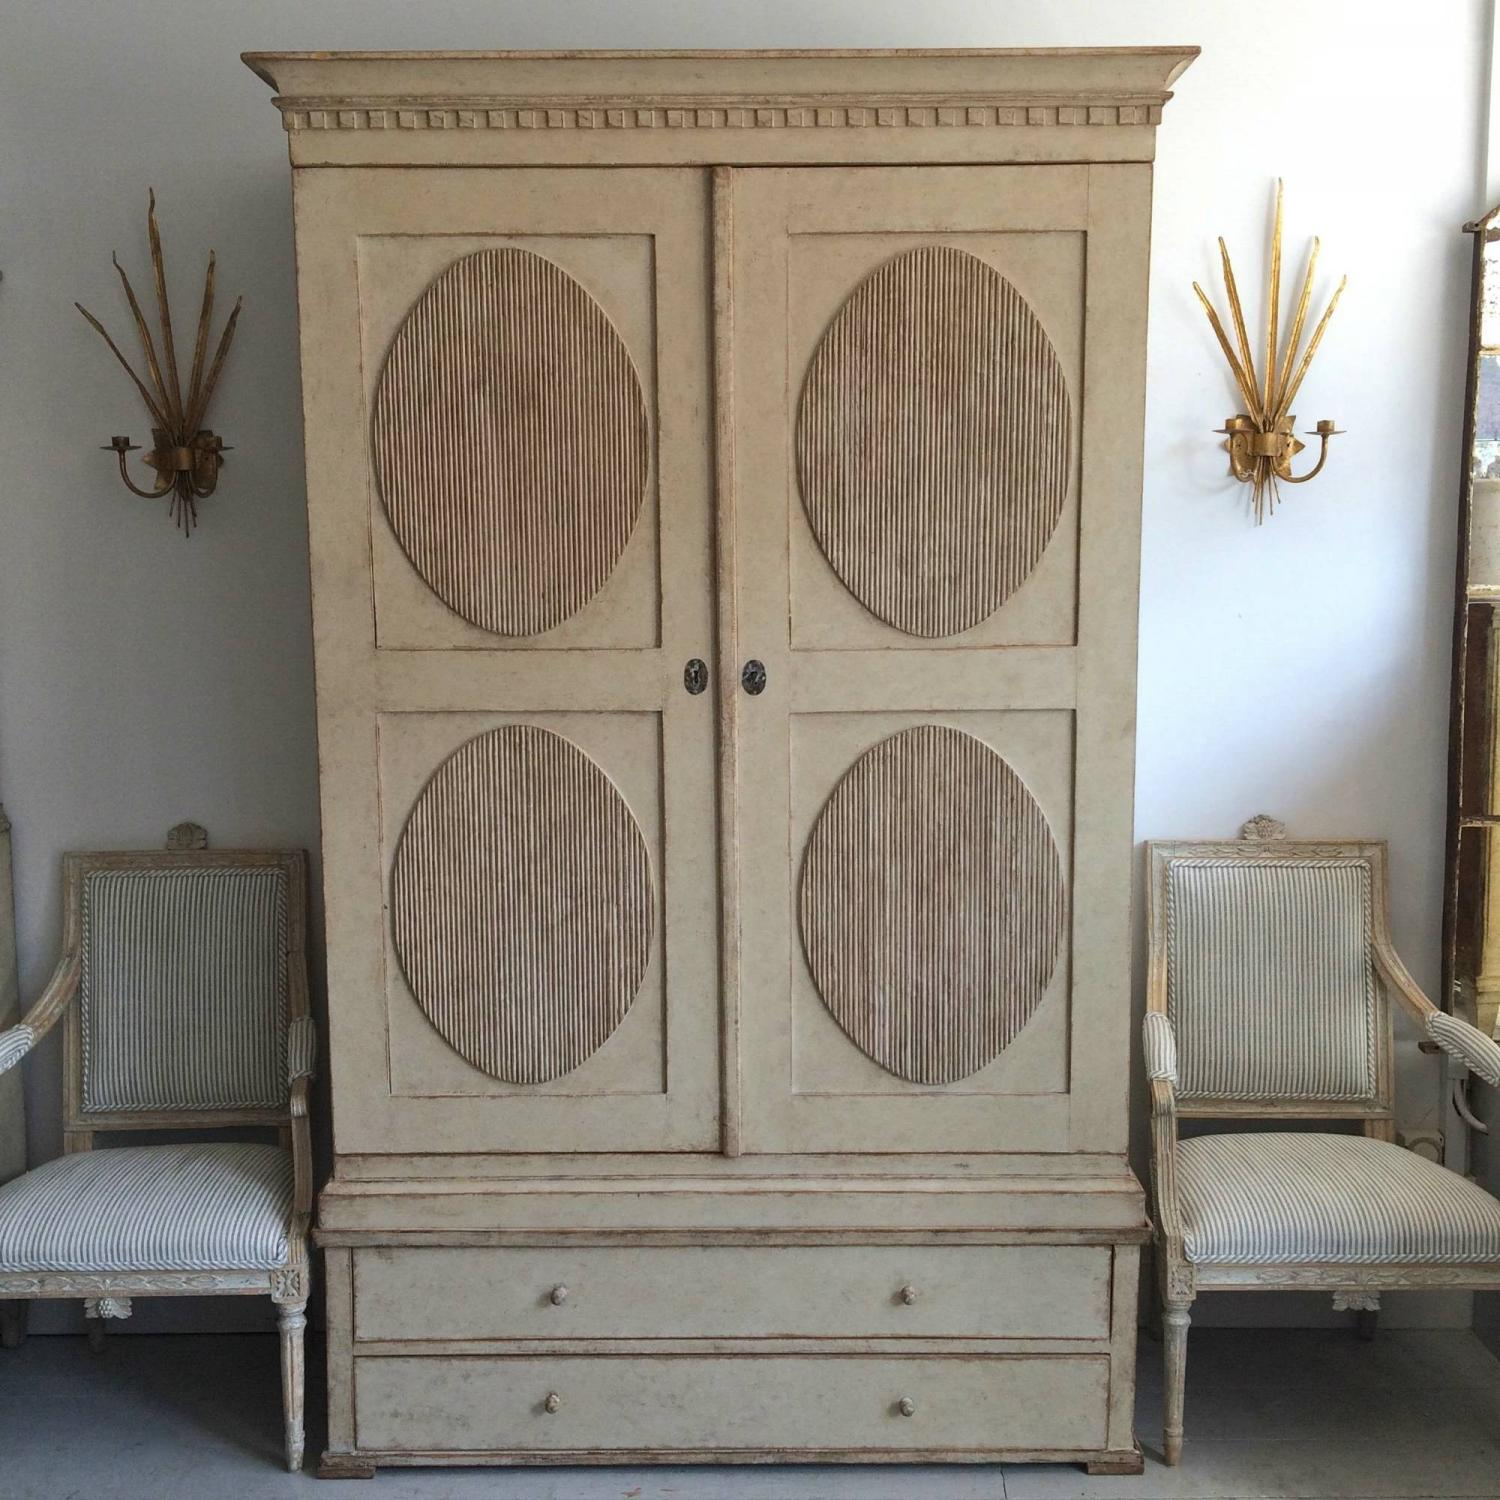 EXCEPTIONAL 19TH CENTURY SWEDISH GUSTAVIAN LINEN PRESS